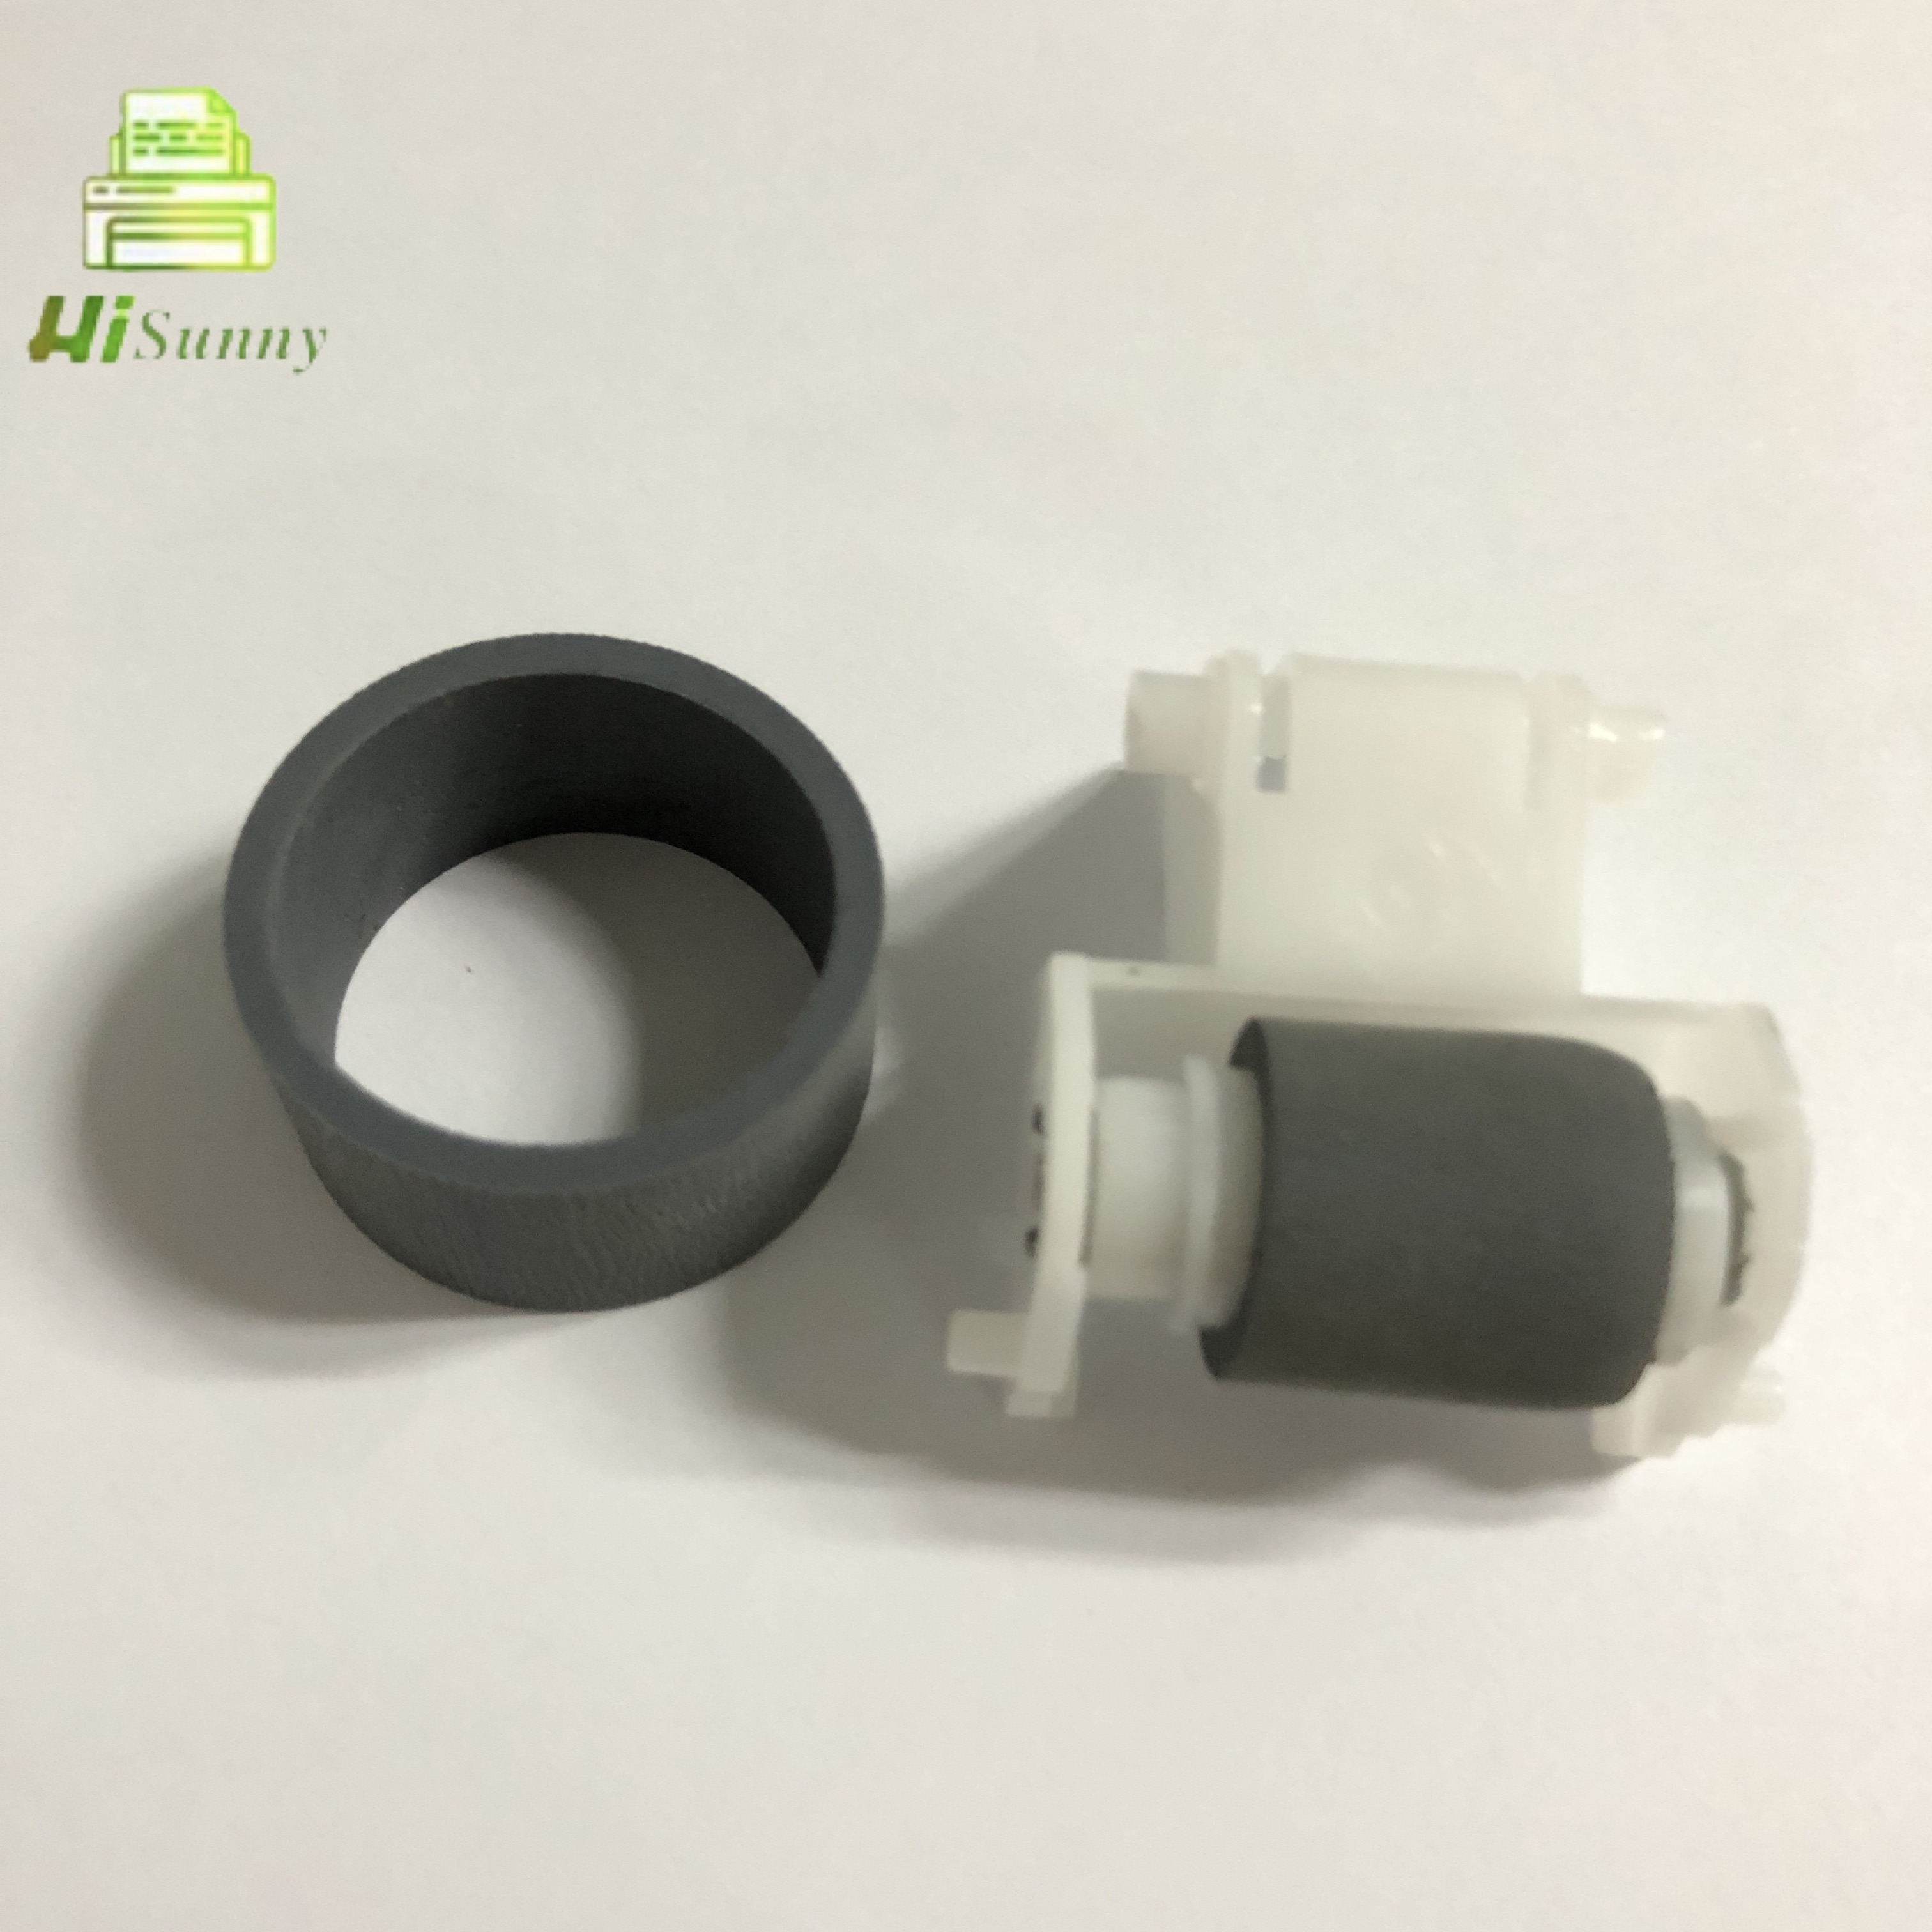 1set Pickup Roller For Epson R250 R270 R280 R290 R330 R390 T50 A50 RX610 RX590 L801 L800 L805 P50 Paper Feed SEPARATION ROLLER